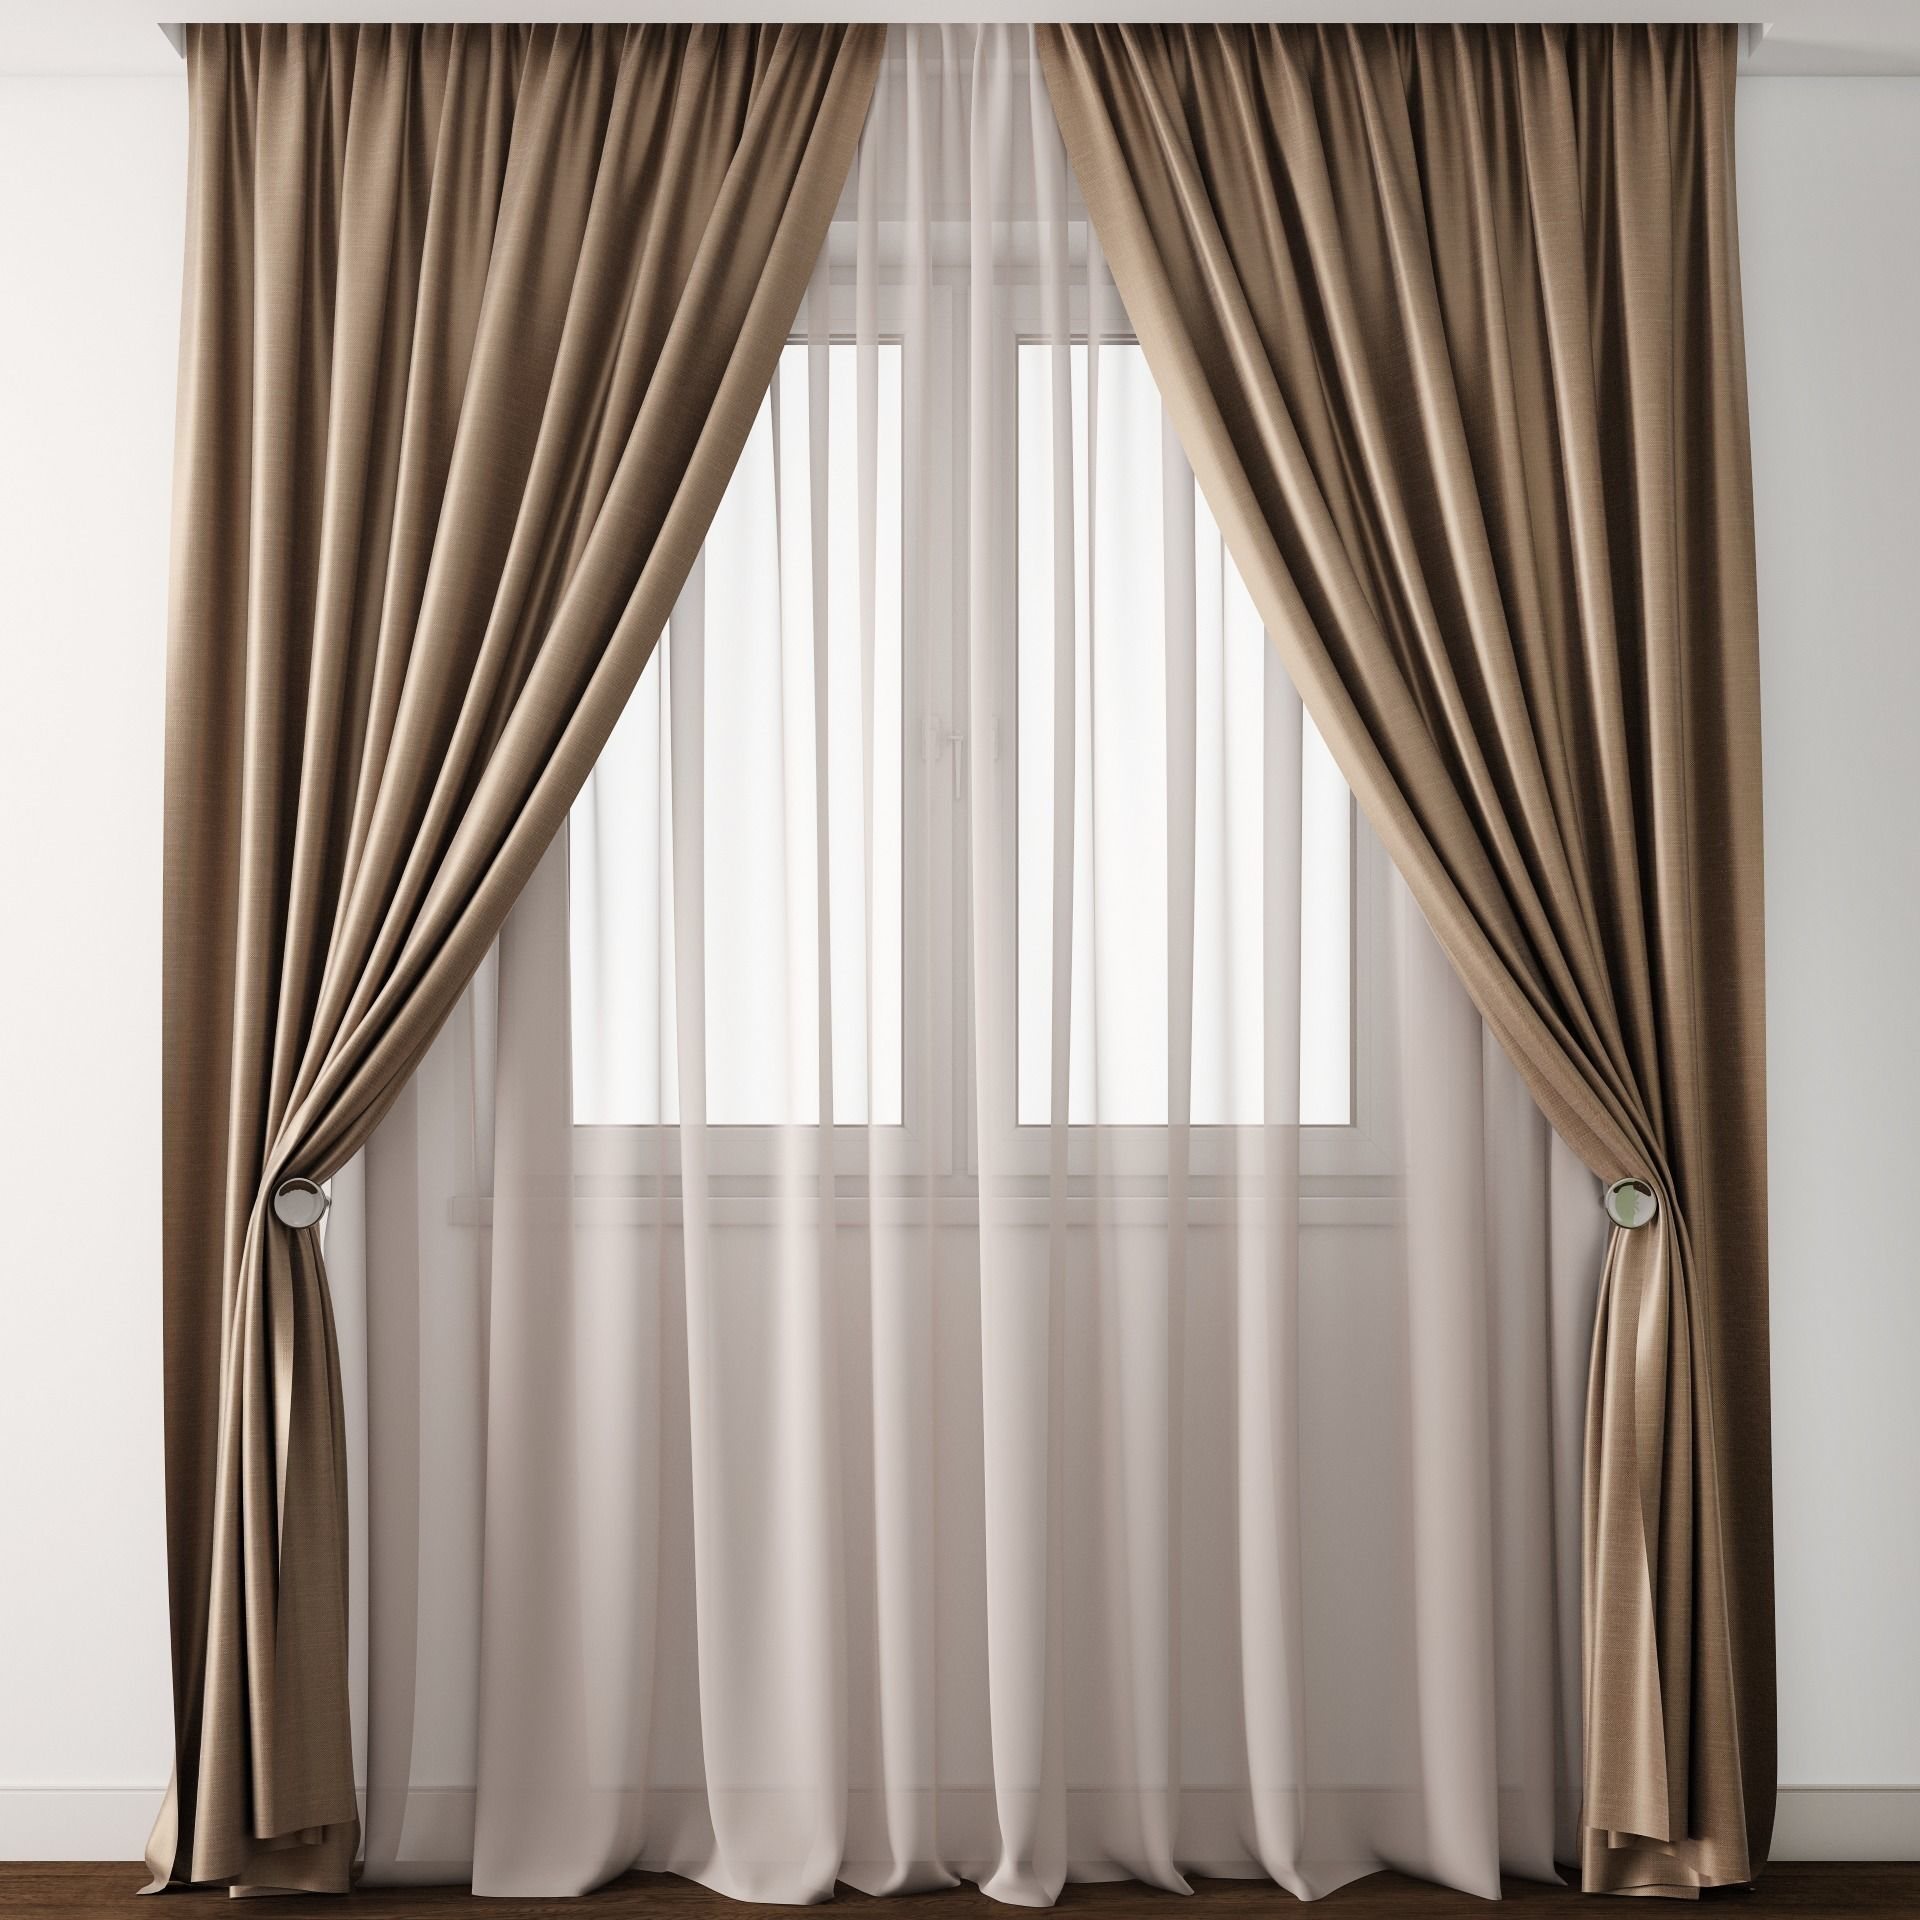 Curtain 9 3d Model Curtains Living Room Dining Room Curtains